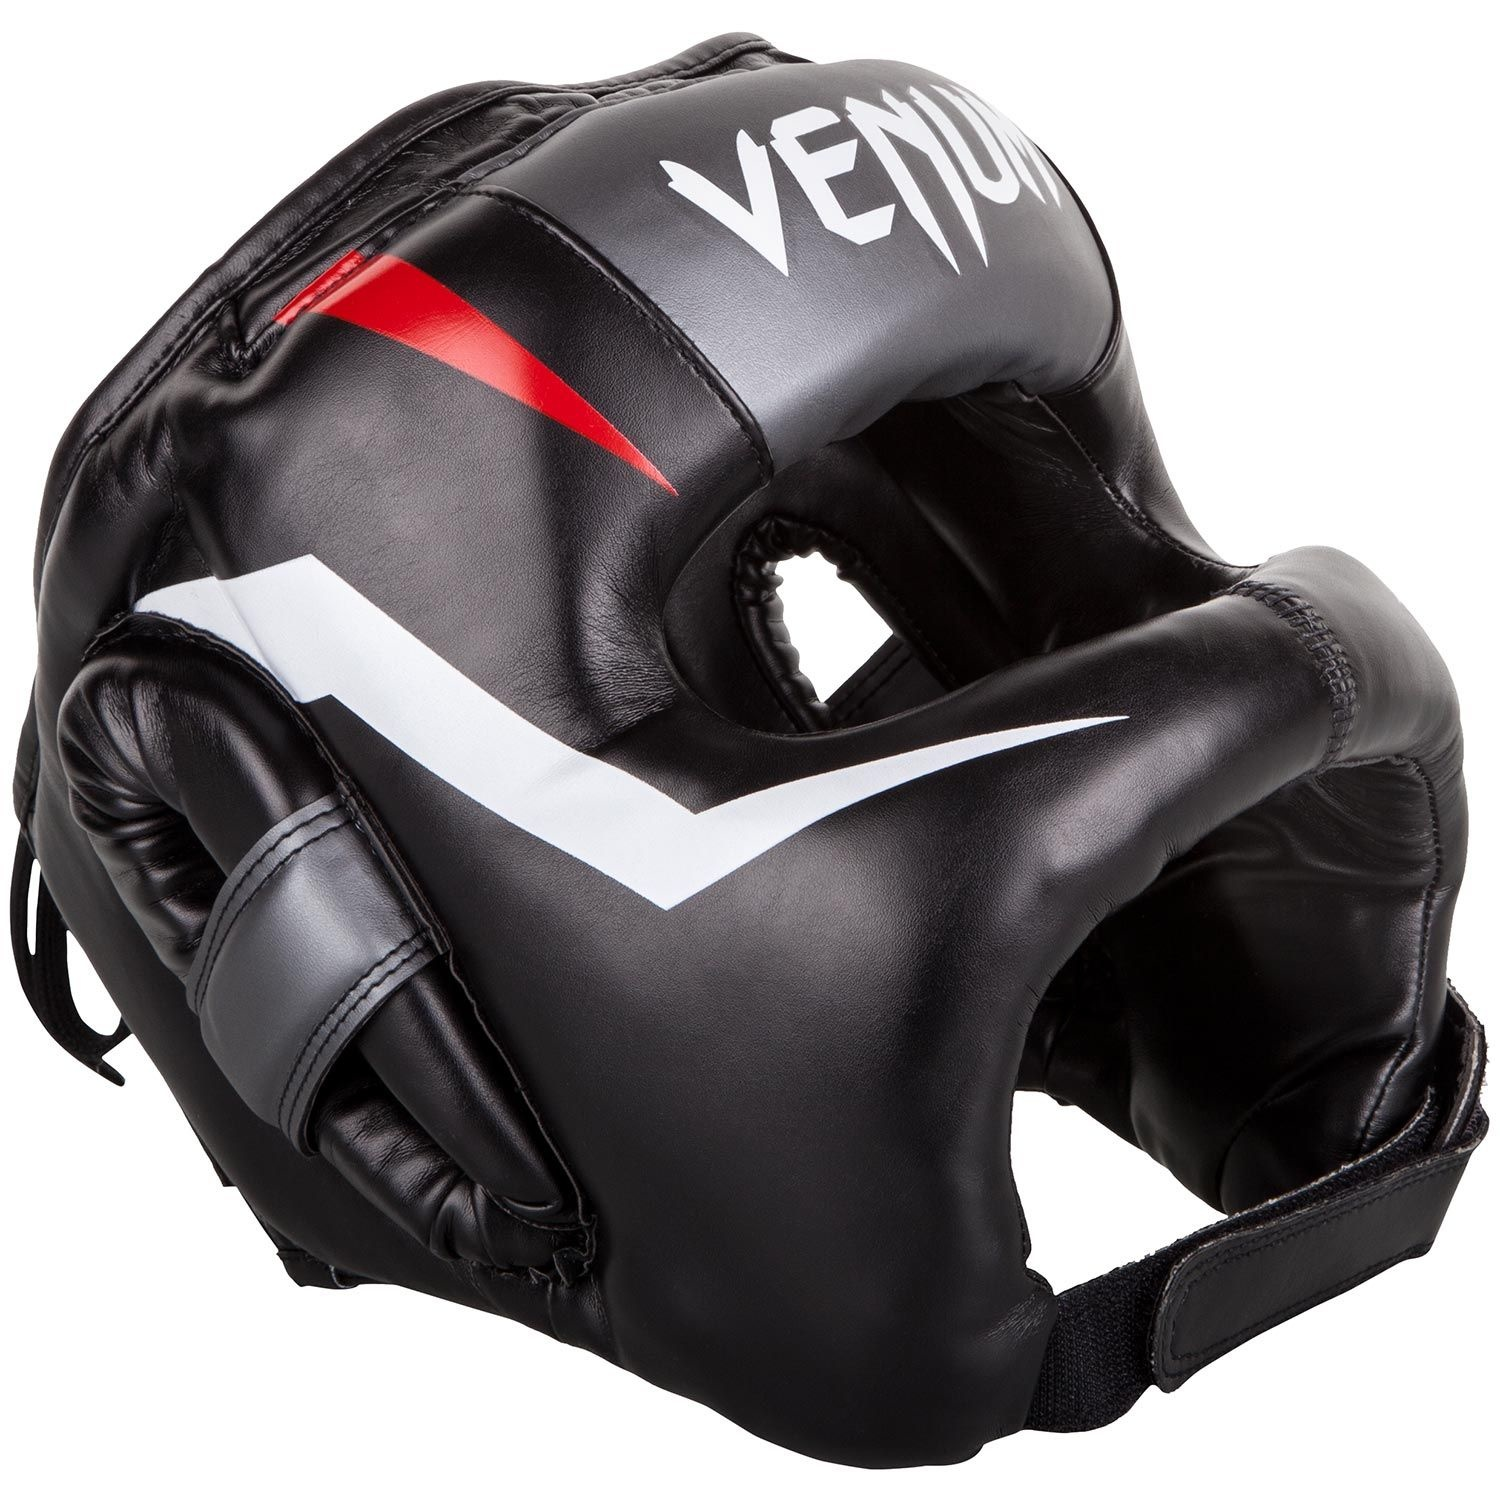 Venum Elite Headgear Black//Red//Gray